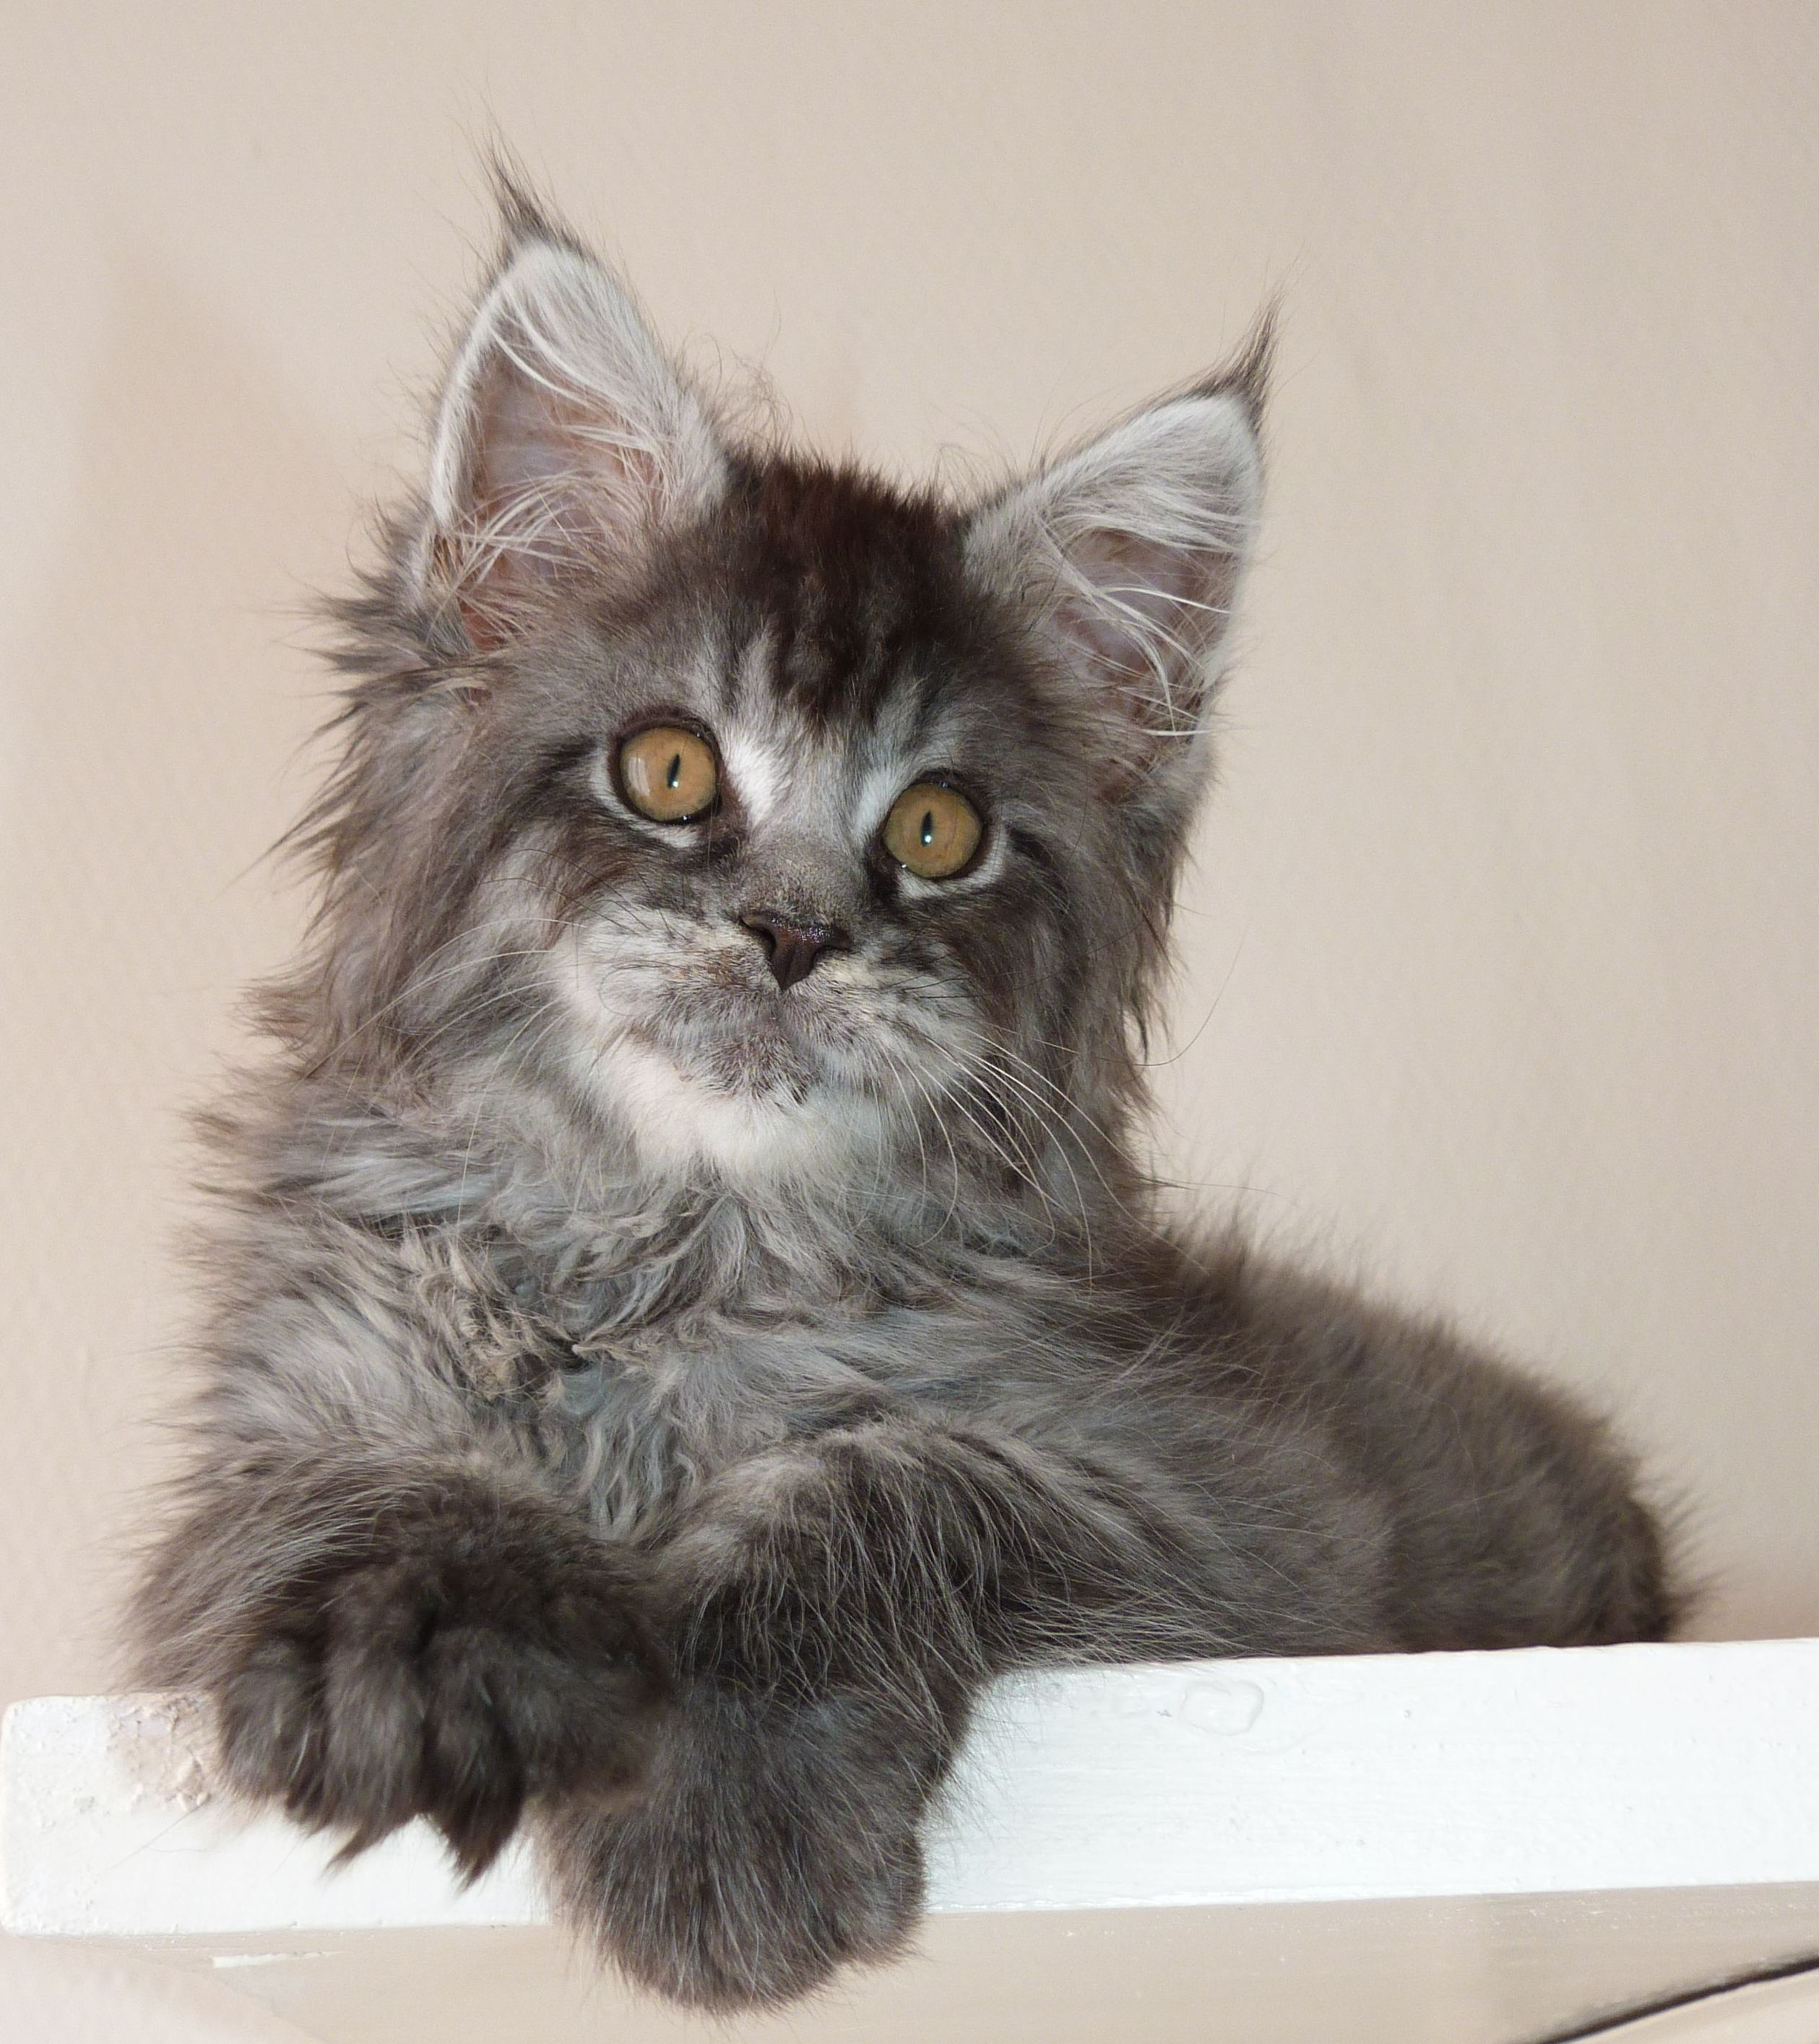 Ragna'Rock de Coon Toujours, Chatterie Coon Toujours, femelle maine coon, 3 mois, black silver mackerel tabby